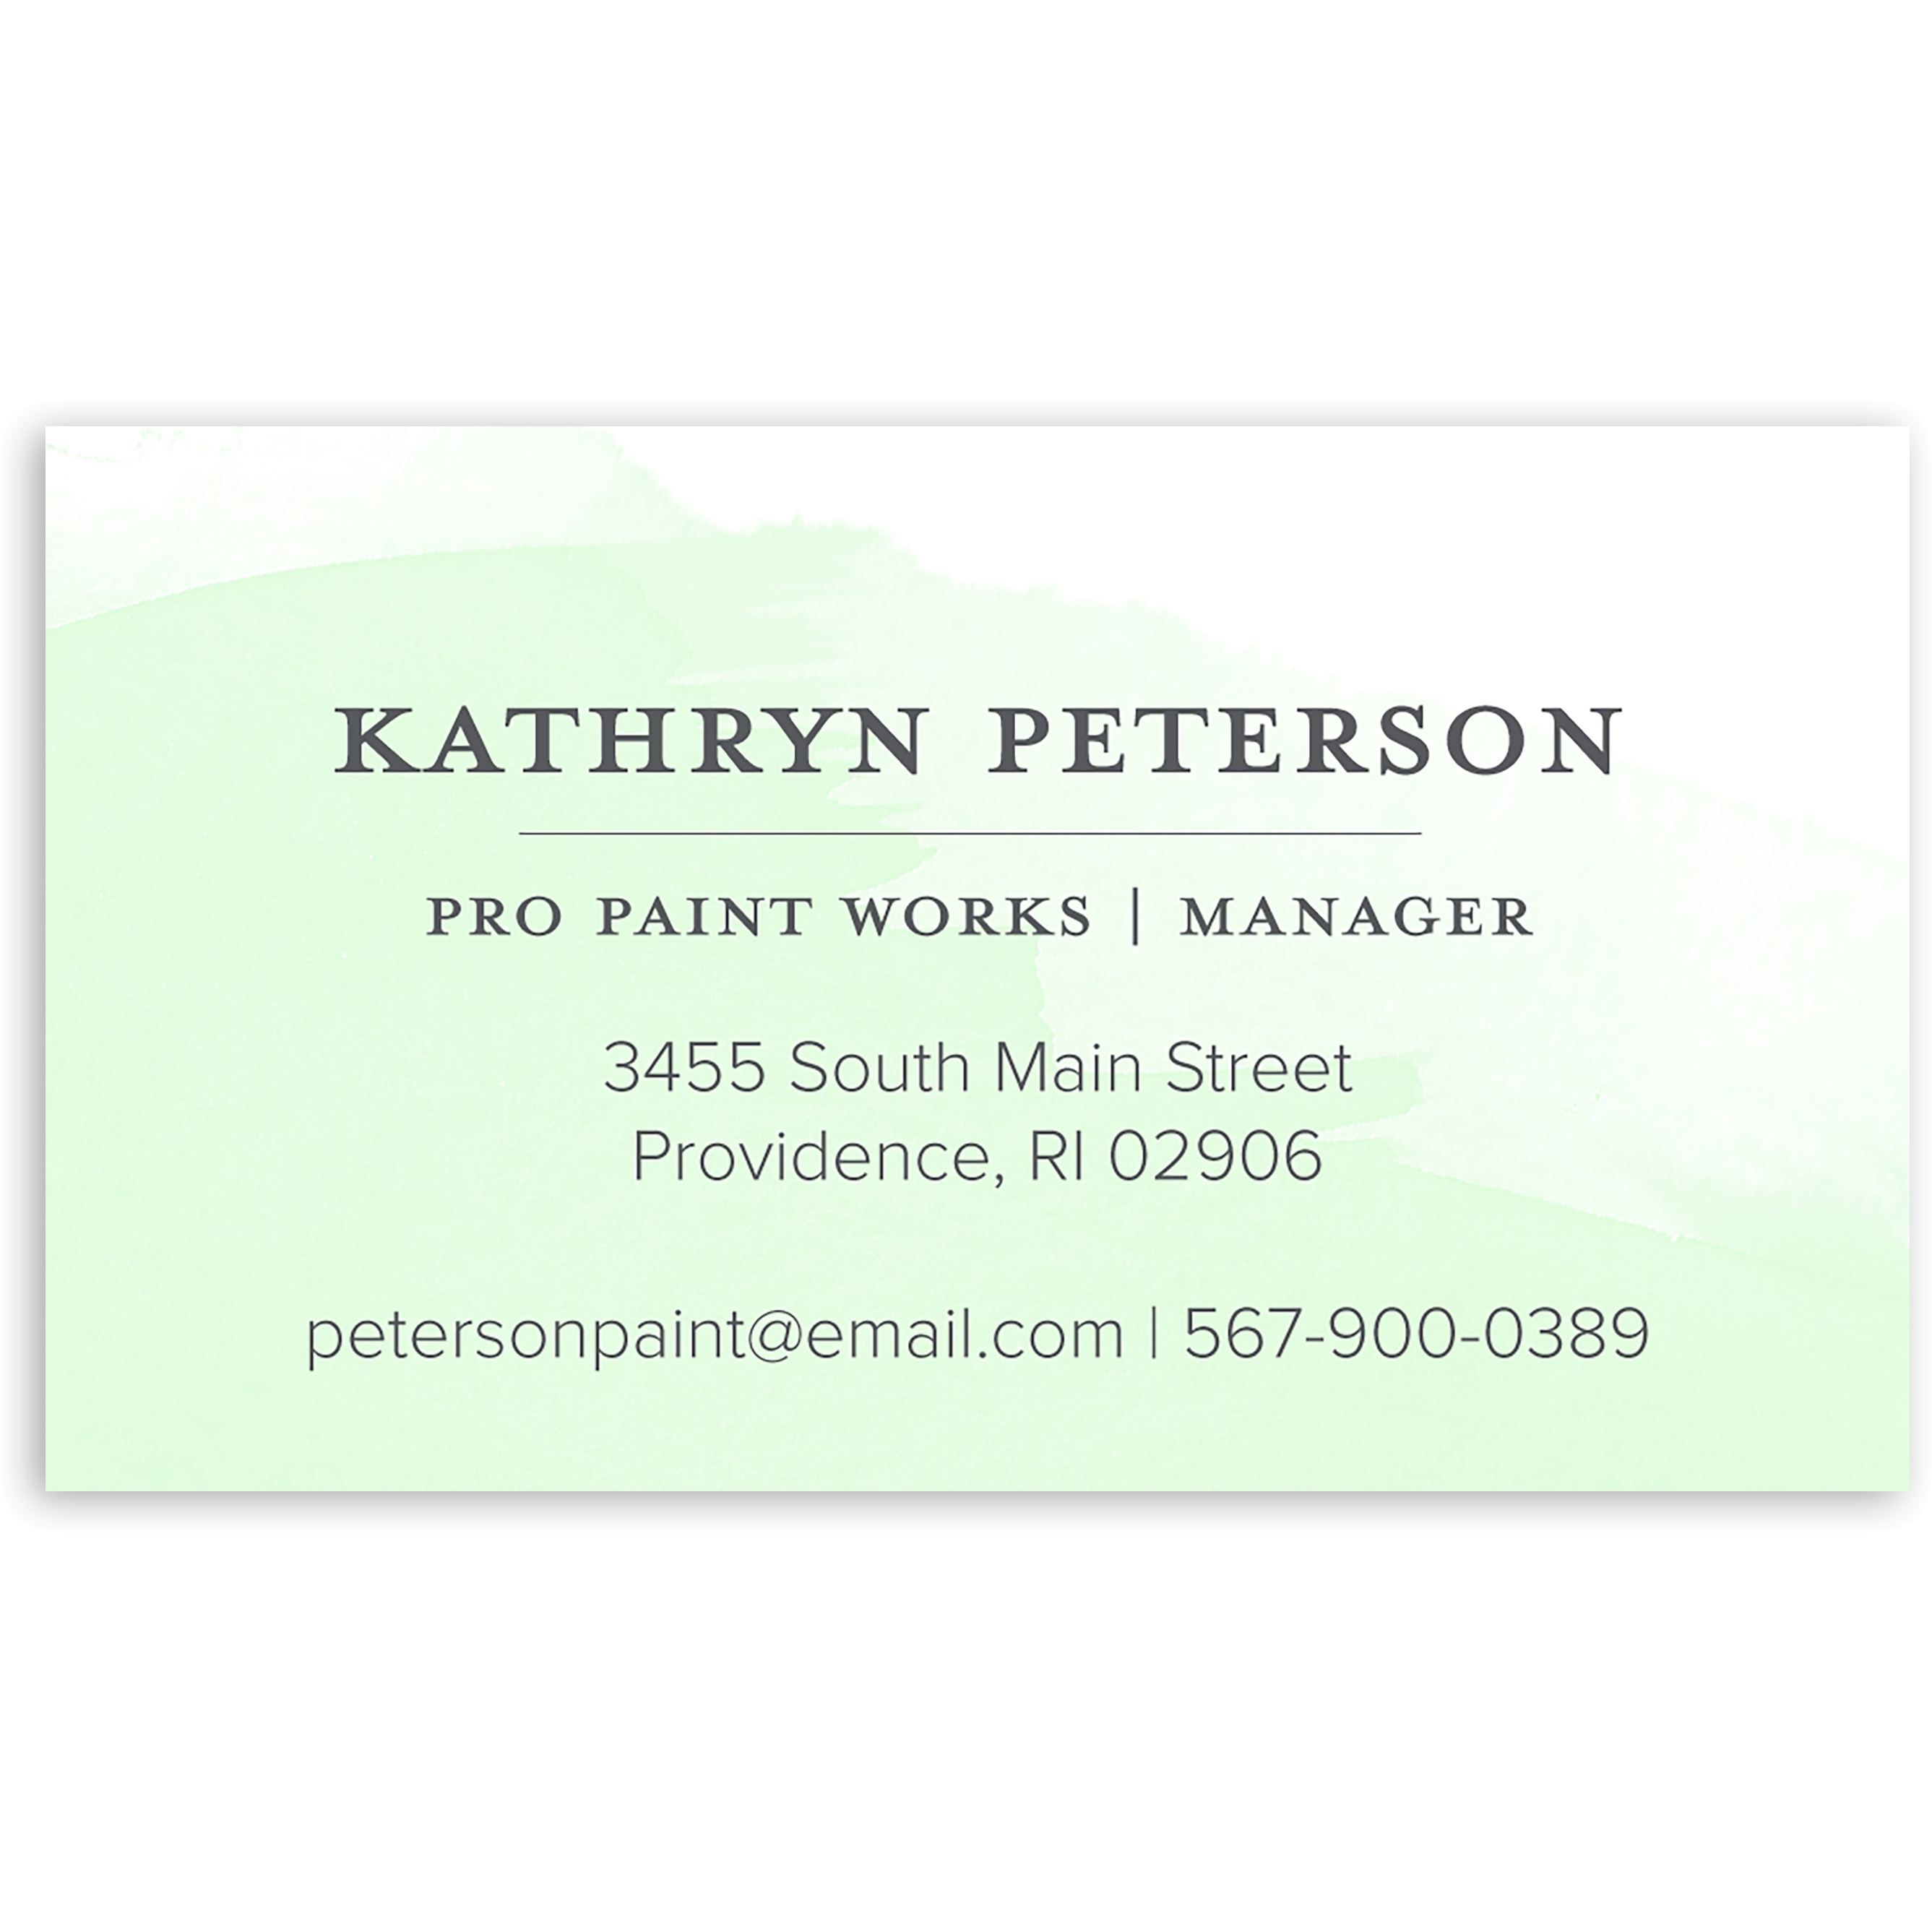 Watercolor Note - Personalized 3.5 x 2 Business Card